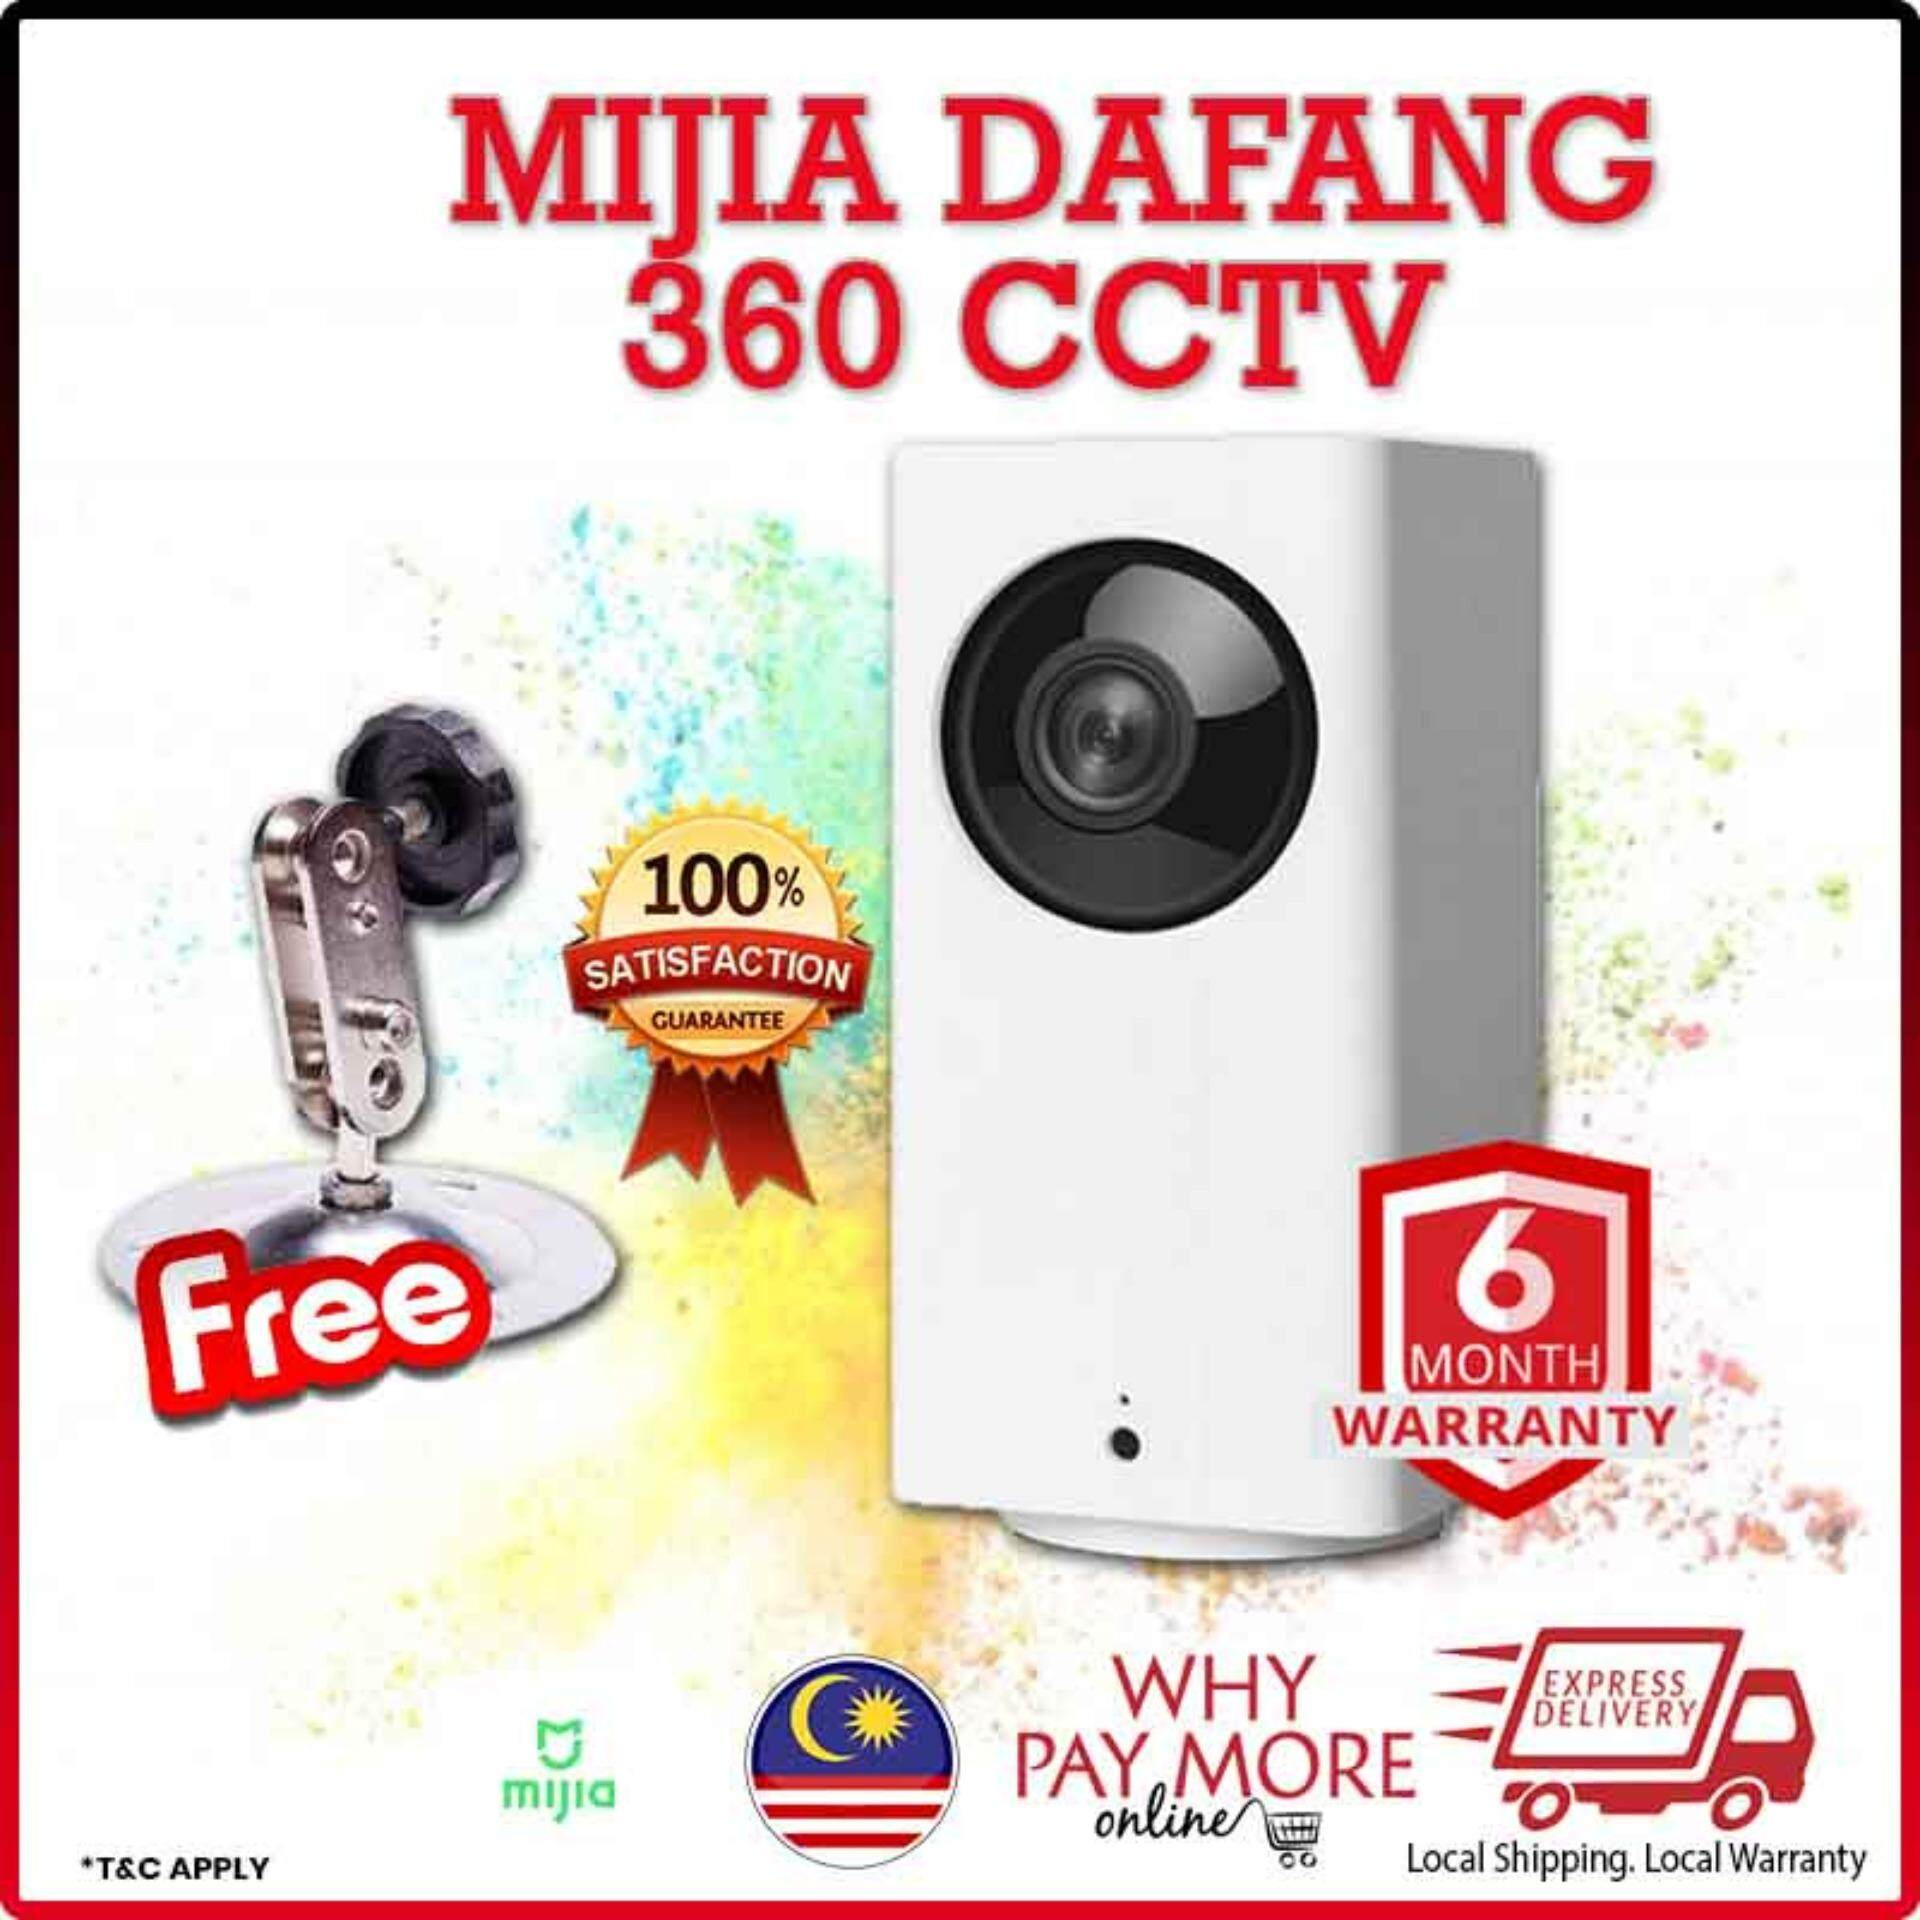 Xiaomi Mijia Dafang CCTV 1080P Camera 360 Panoramic Night Da fang HD + FREE WALL MOUNT